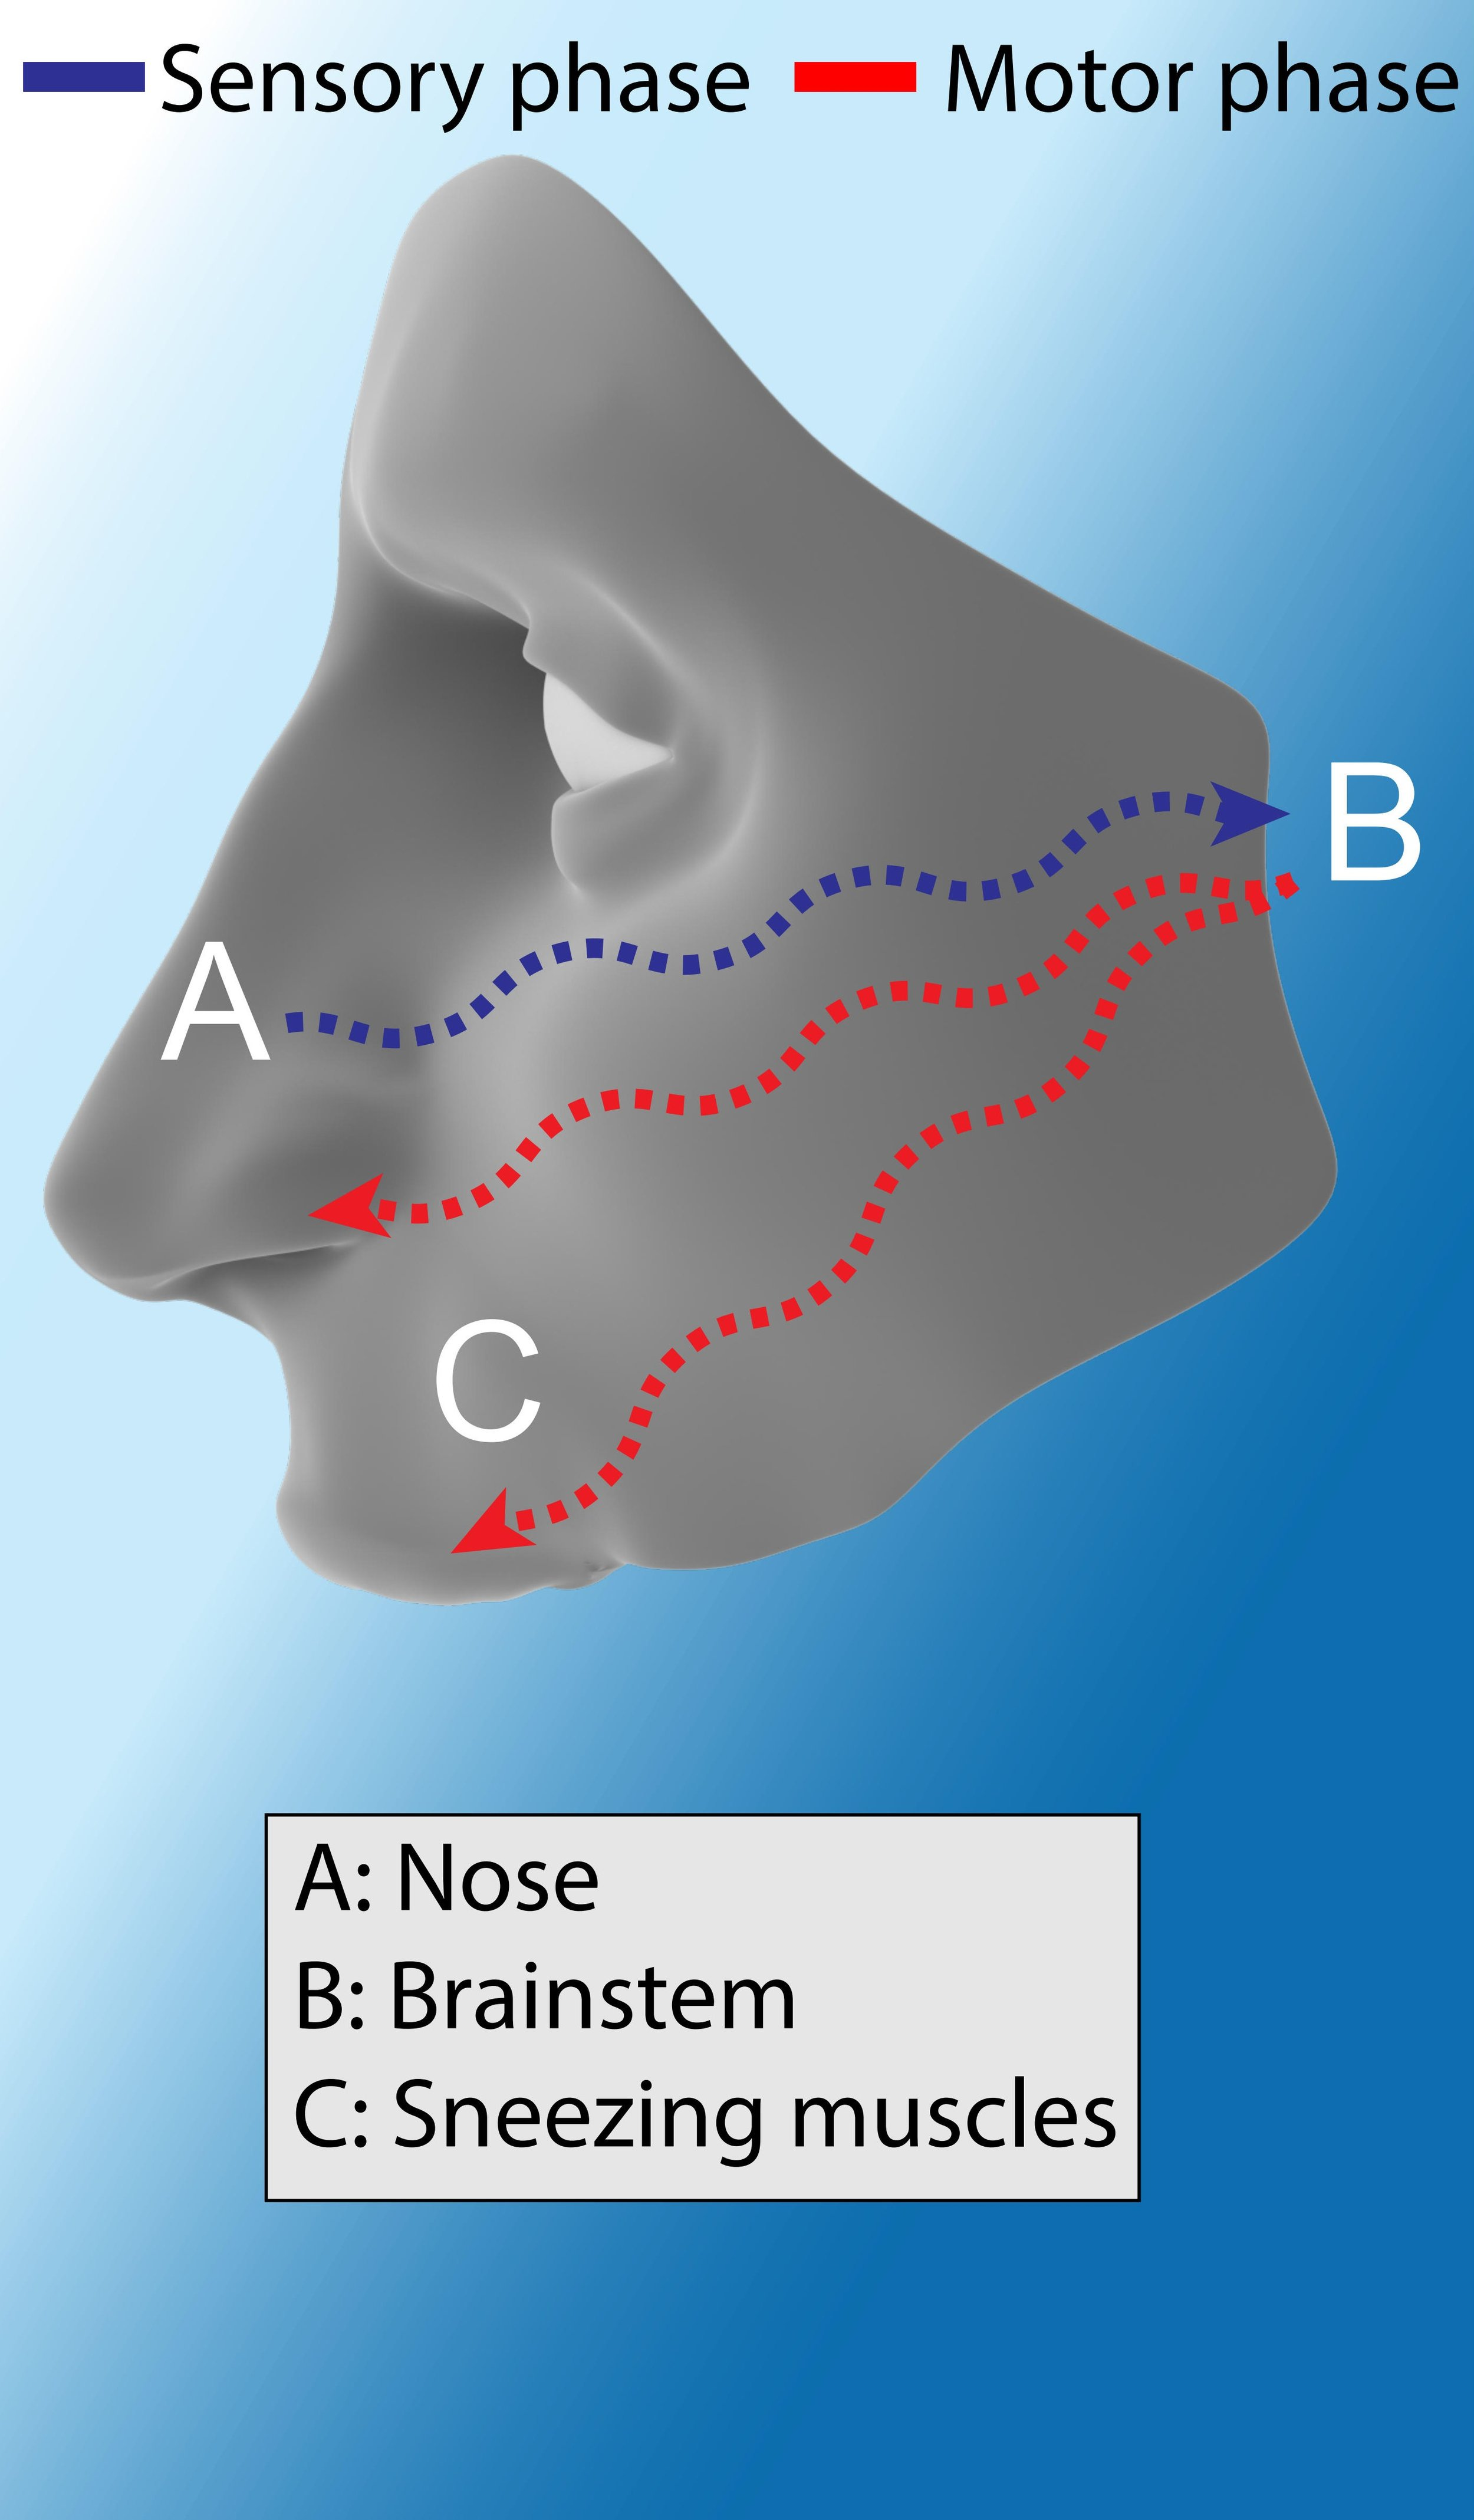 """Normal sneezing : The trigeminal nerve senses irritation in the nose (A) and relays this information to the brainstem (B), which activates sneezing muscles (C) in the face, throat, and chest. Image Credit: Alex Sercel with the """"face"""" image licensed under  CC BY-NC-SA 4.0 ."""